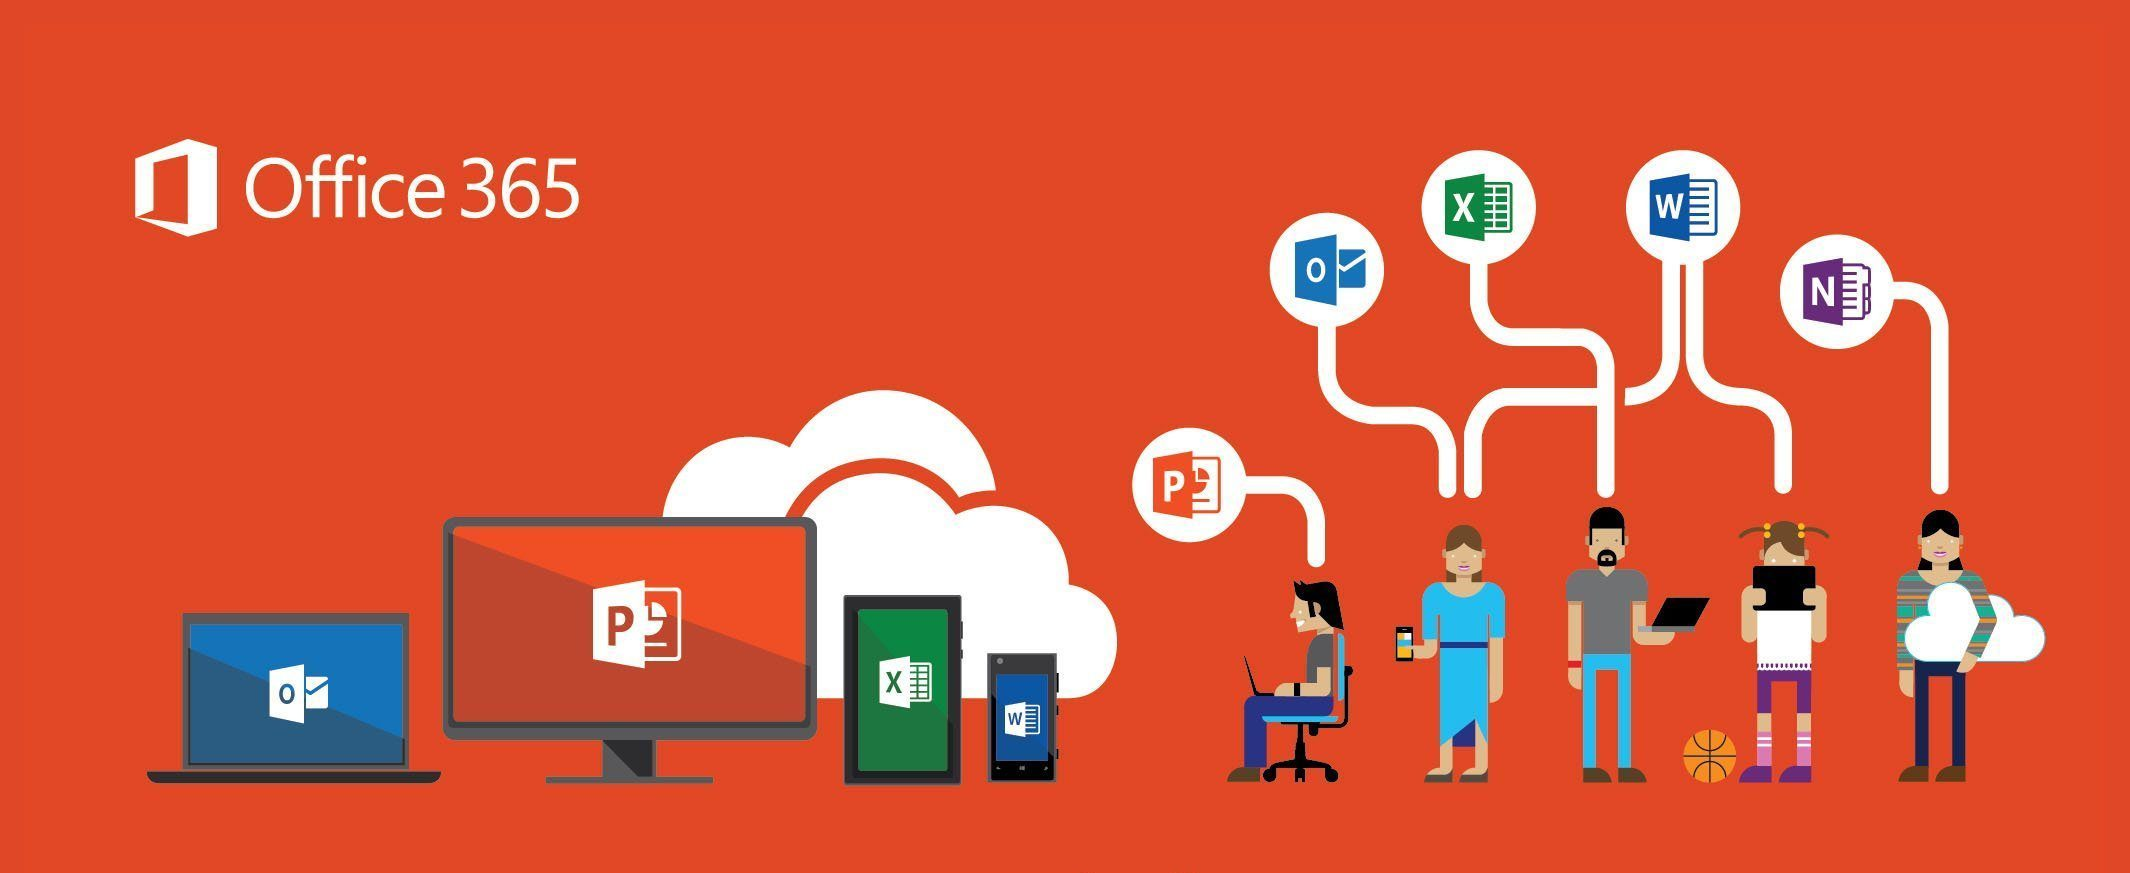 Office 365 image